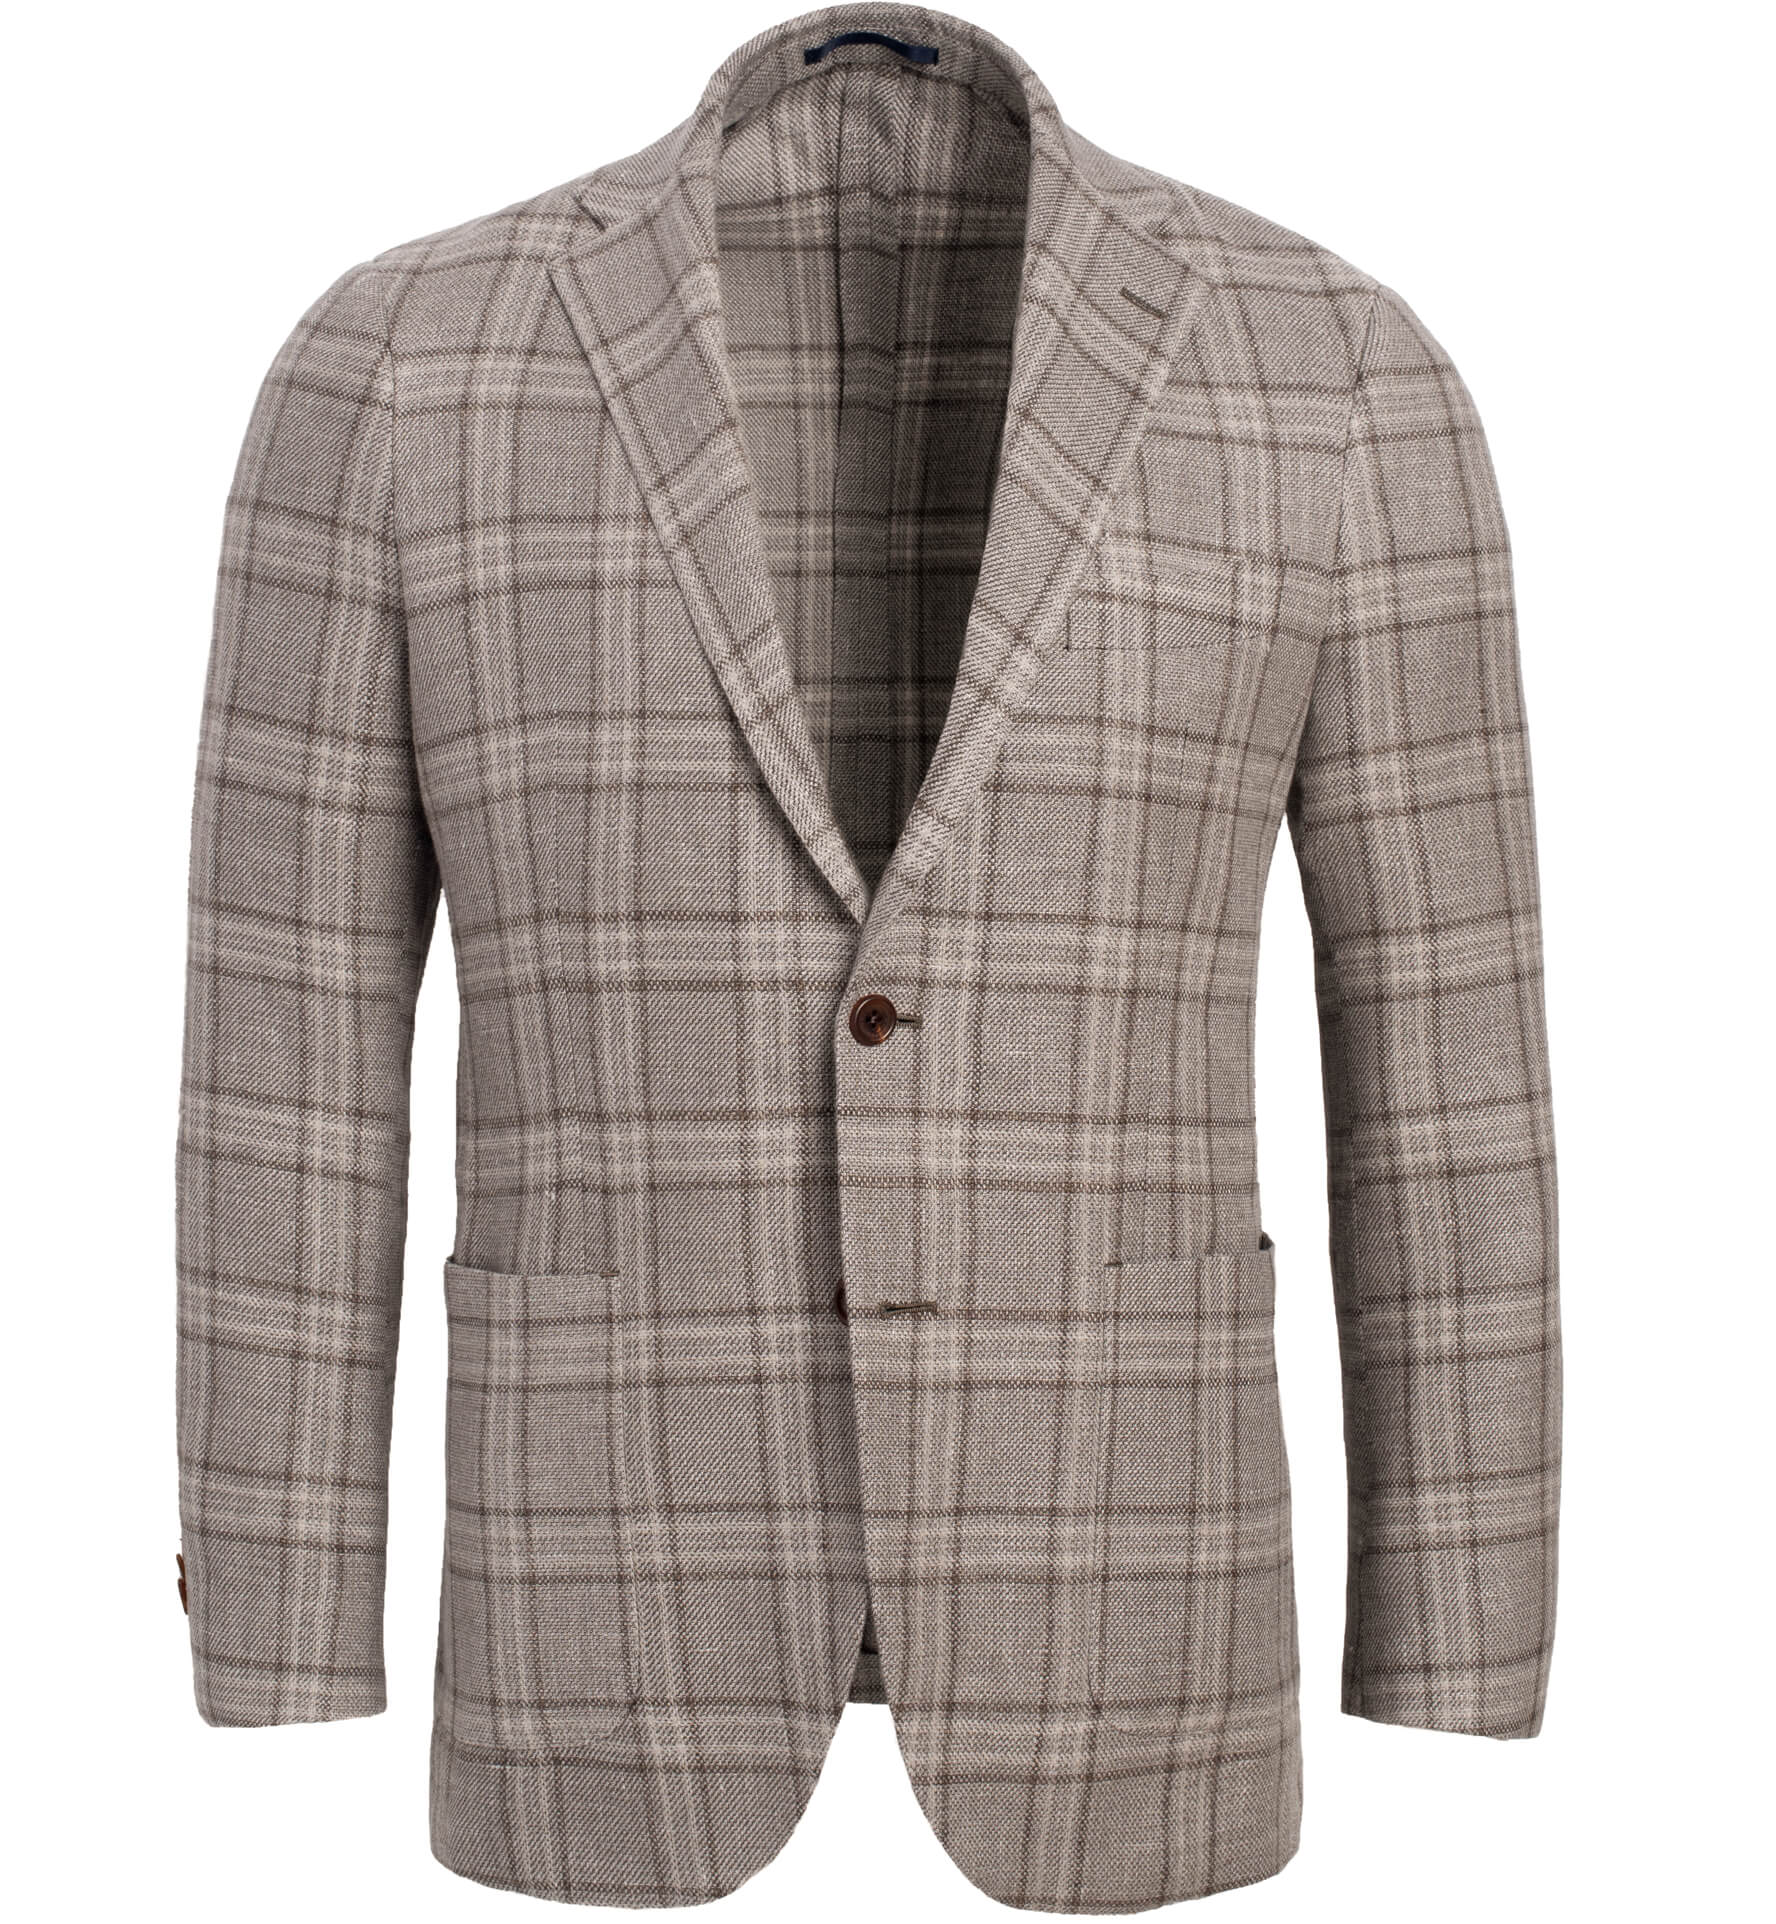 Zoom Image of Bedford Beige Plaid Linen and Wool Jacket